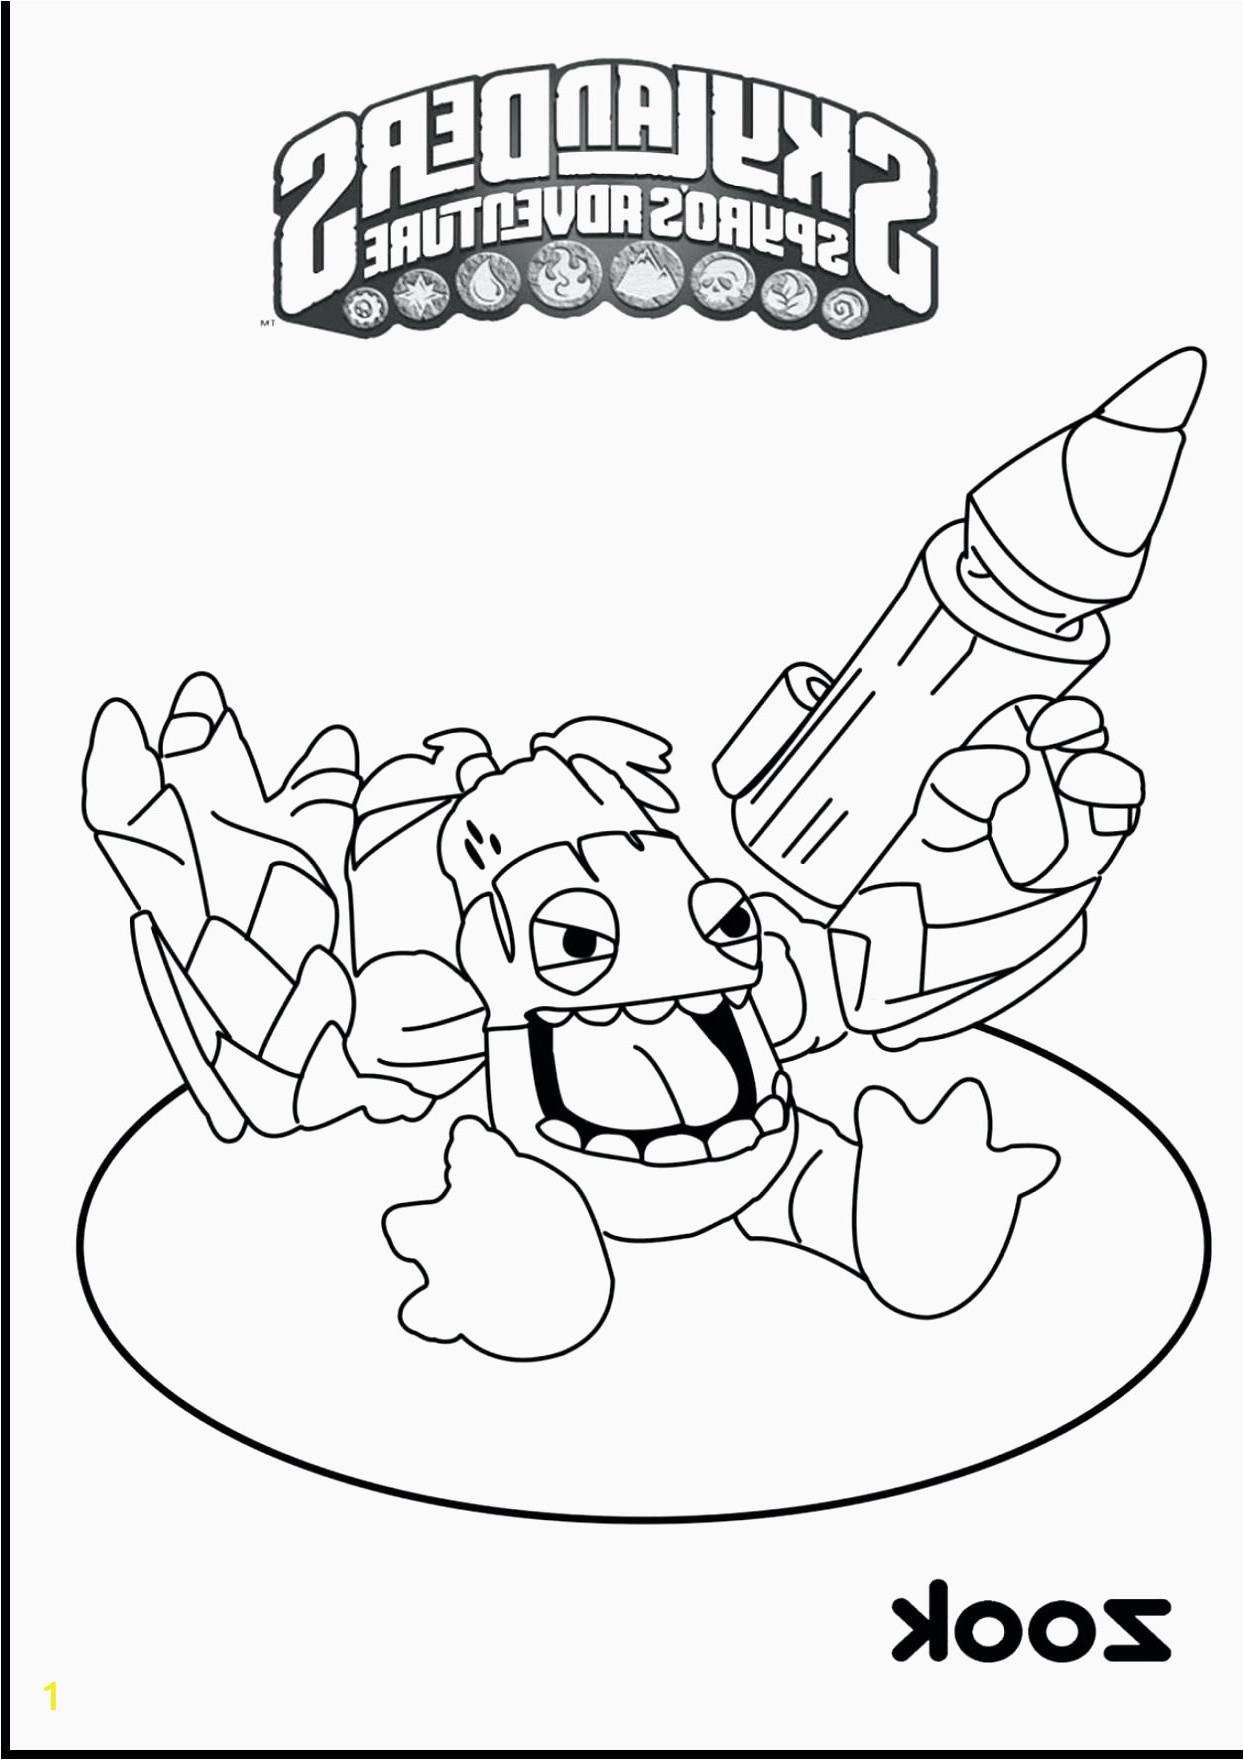 coloring page printable luxury gallery link coloring pages elegant coloring pages dogs new printable cds 0d of coloring page printable